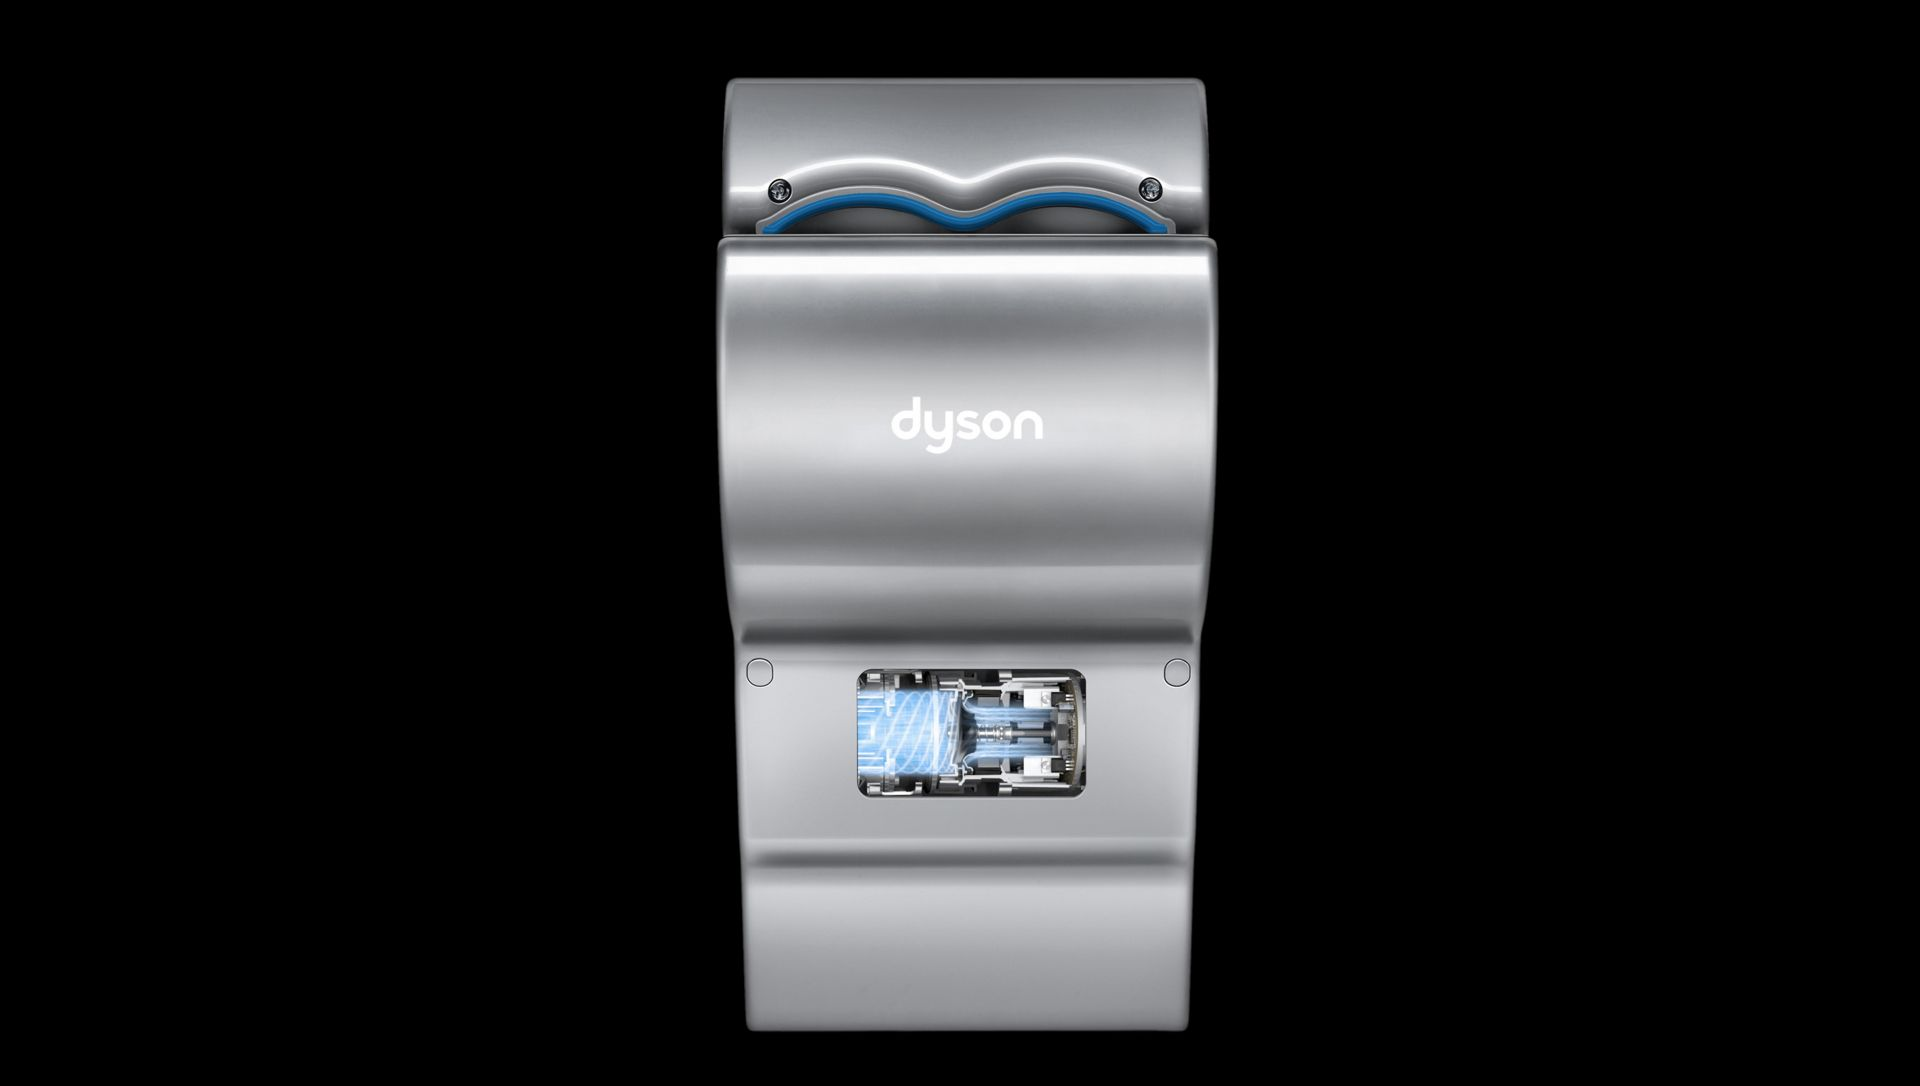 Detailed image showing Dyson Airblade dB digital motor V4